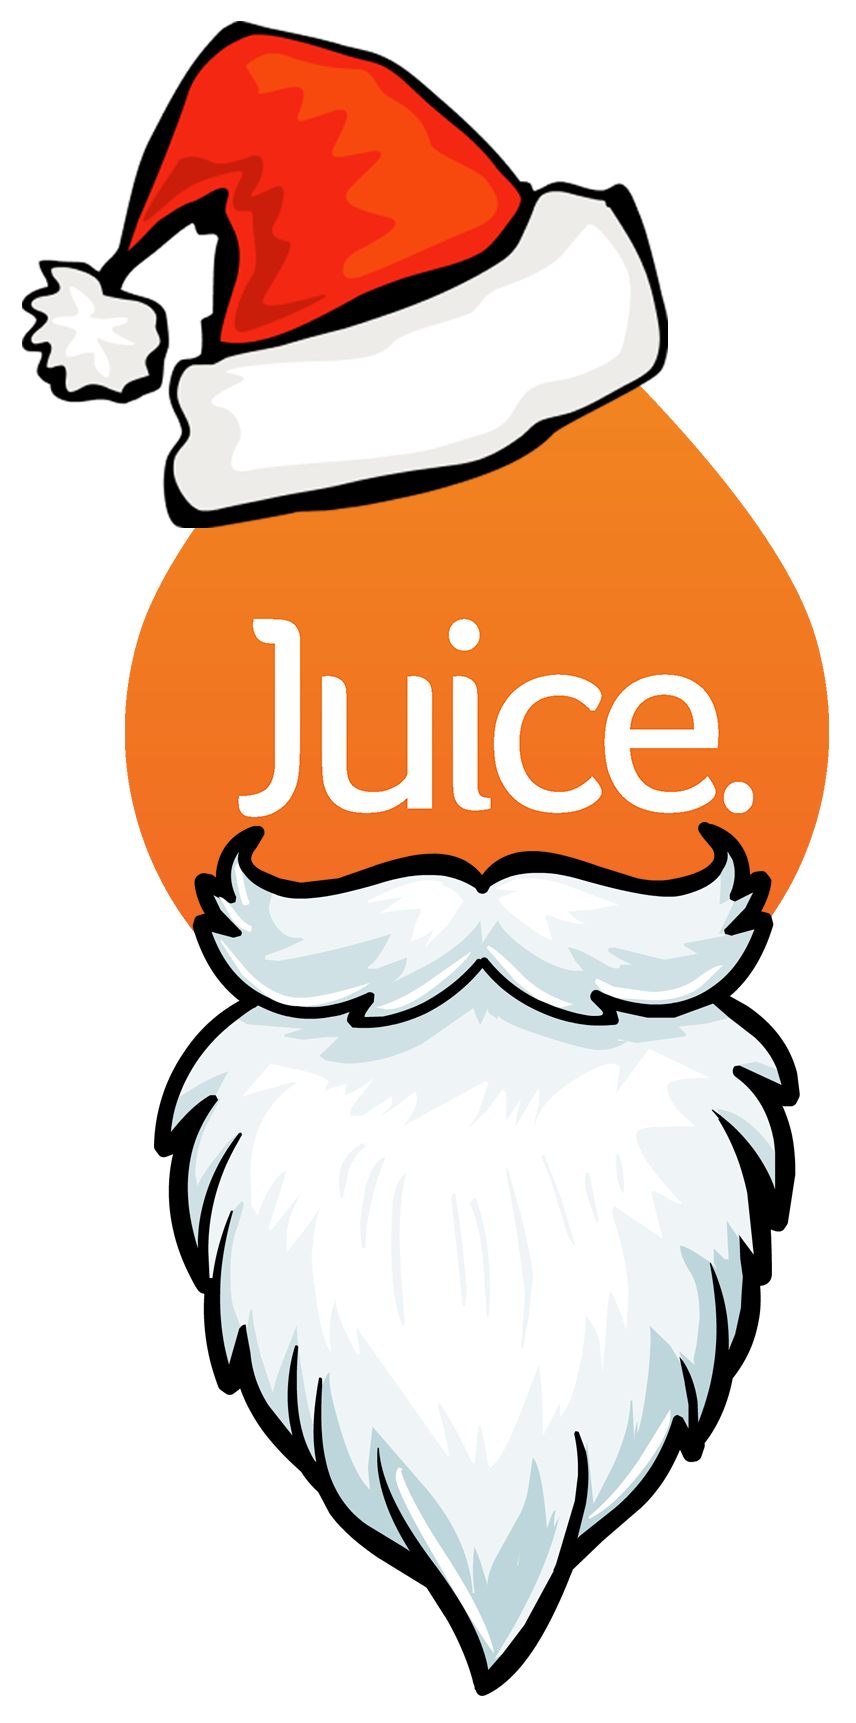 Juice 12 Days of Christmas!